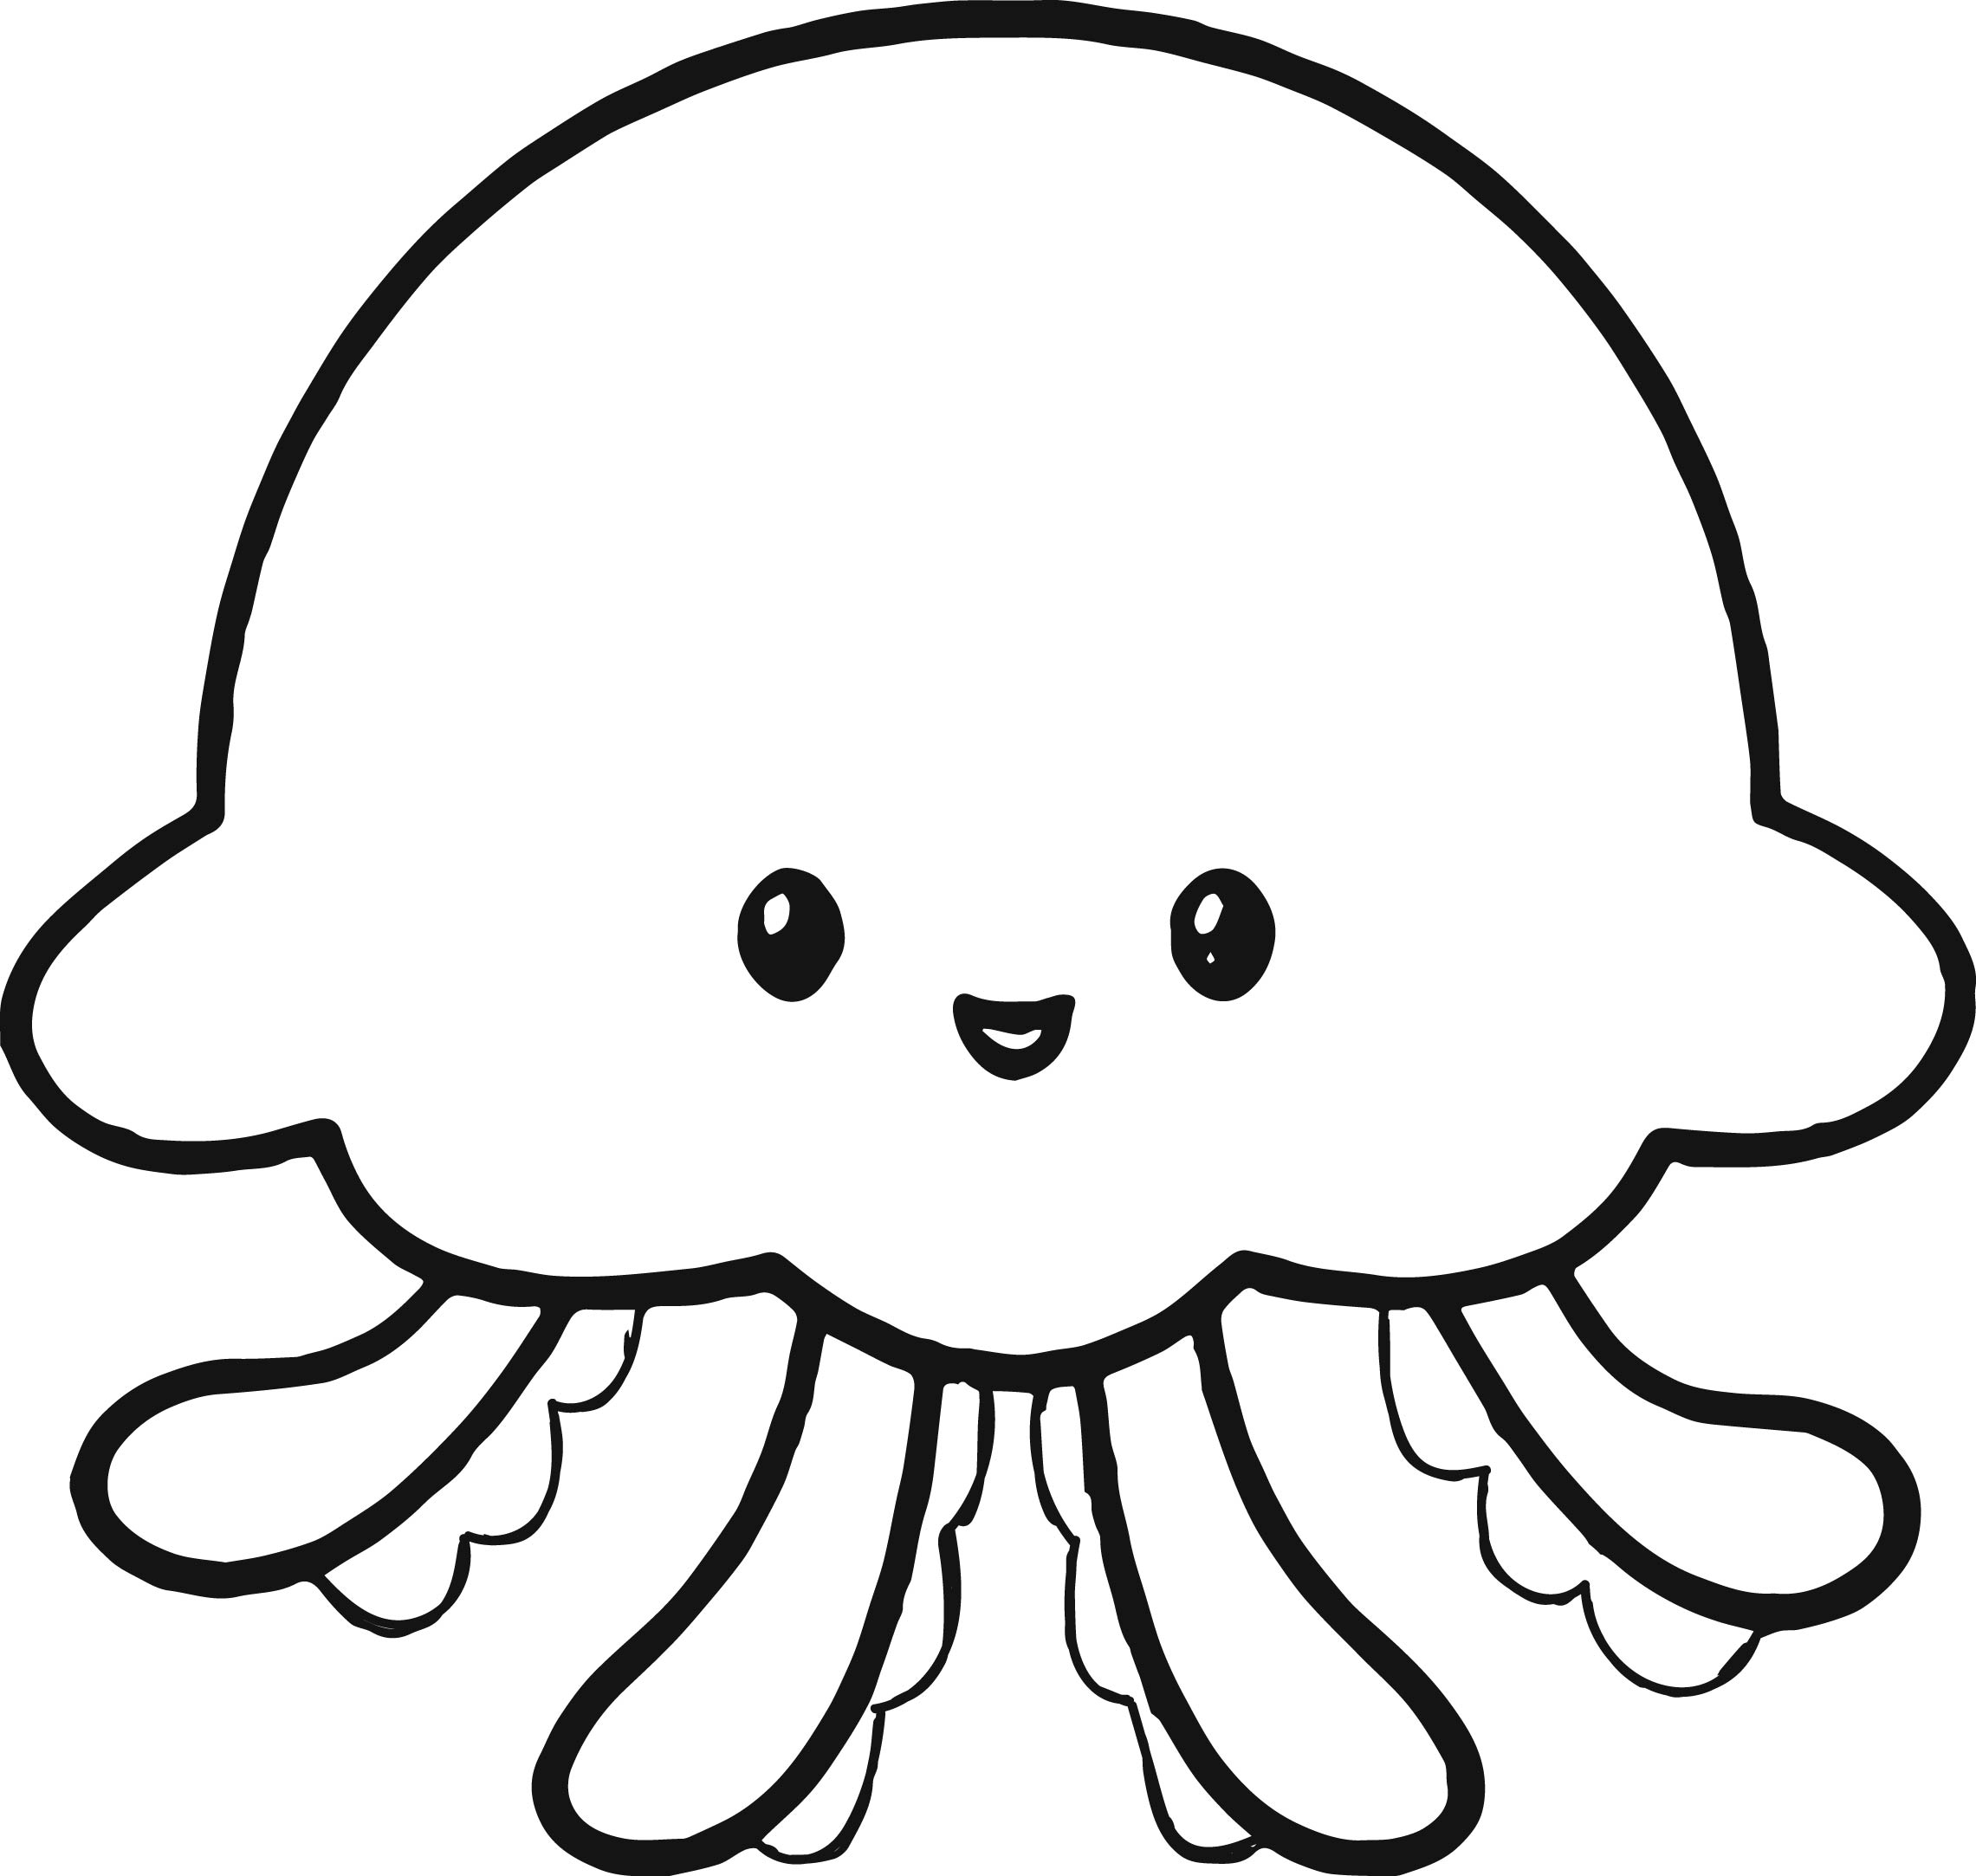 Cute Jellyfish Coloring Page Wecoloringpage Jellyfish Coloring Page